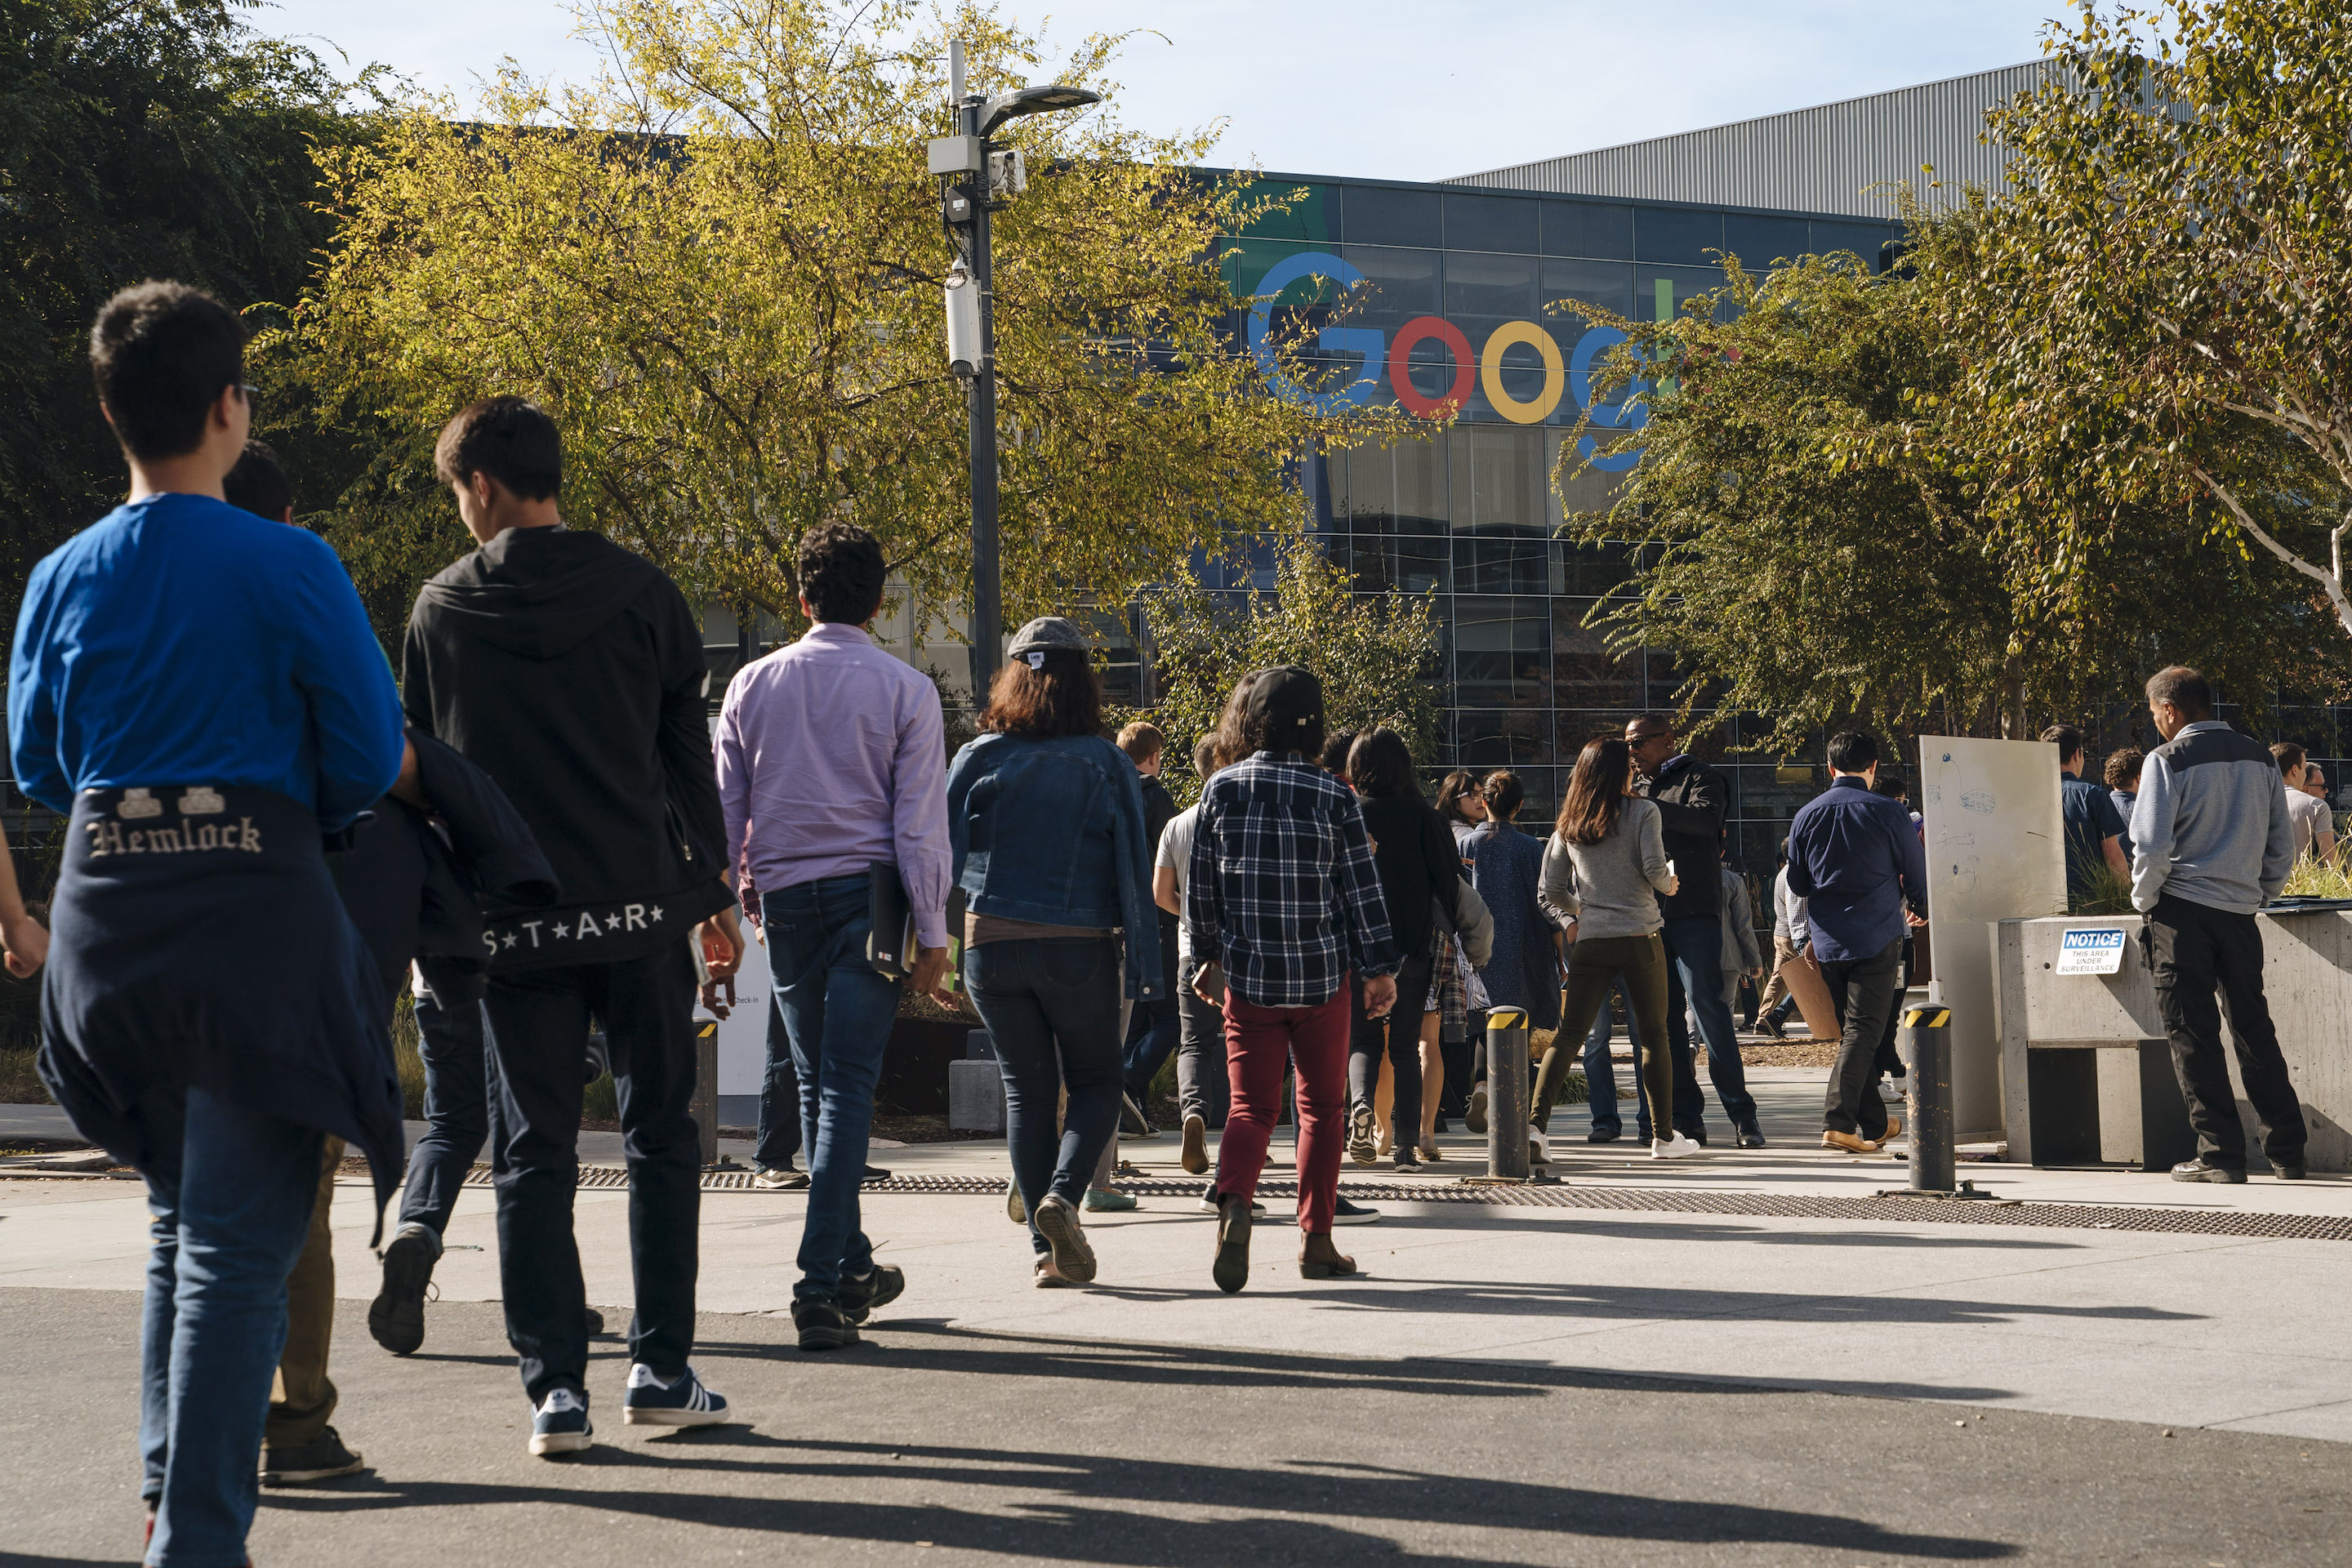 MOUNTAIN VIEW, CA - NOVEMBER 01: Google employees walk off the job to protest the company's handling of sexual misconduct claims on November 1, 2018, in Mountain View, California. Google's workers are preparing to walk off the job again, this time to participate in the climate change strike being held on Sept. 20.